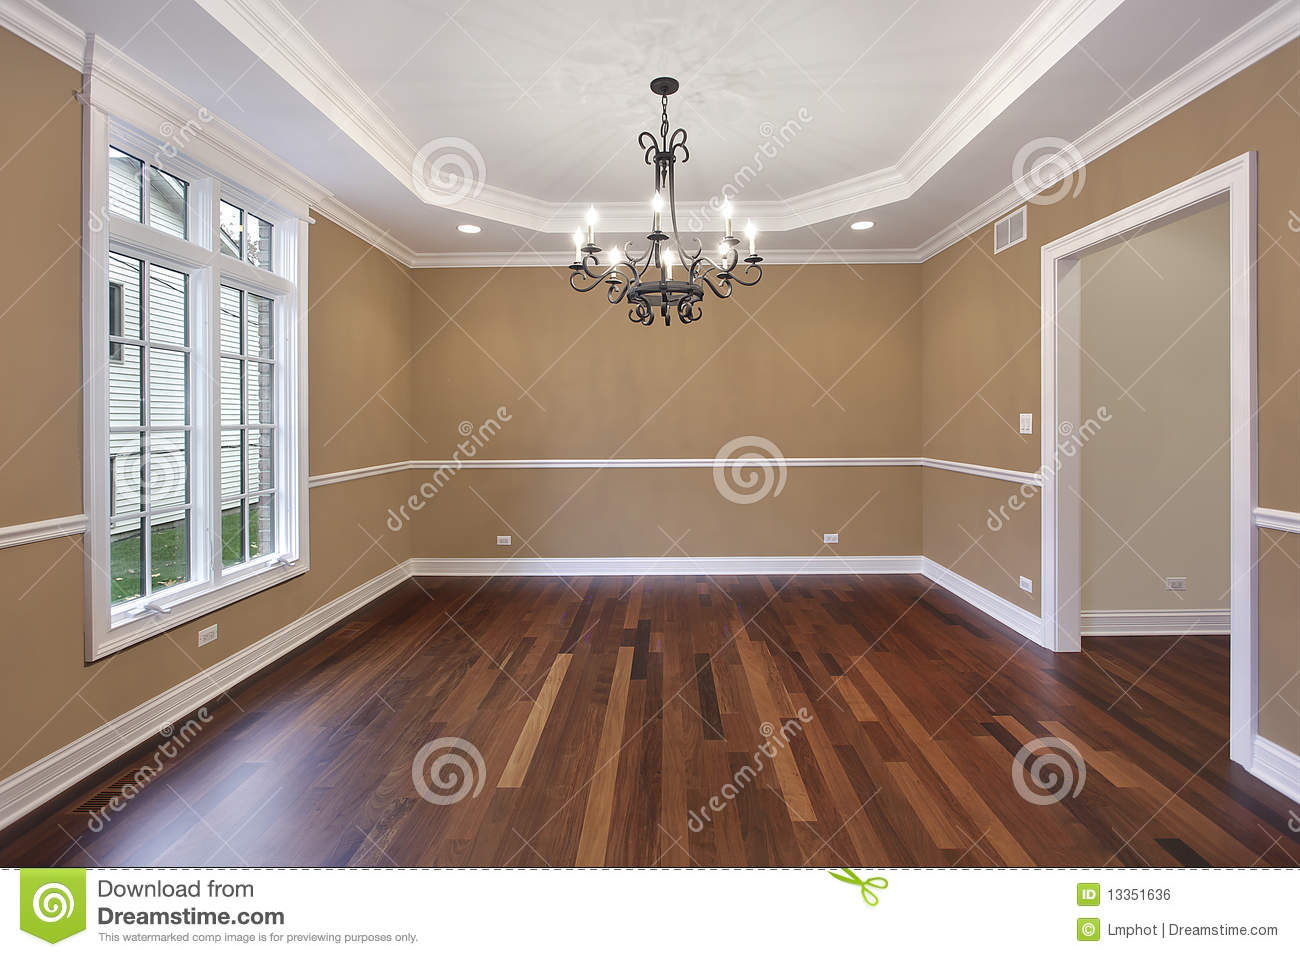 Dining Room With Tan Walls Stock Photo Image Of Design